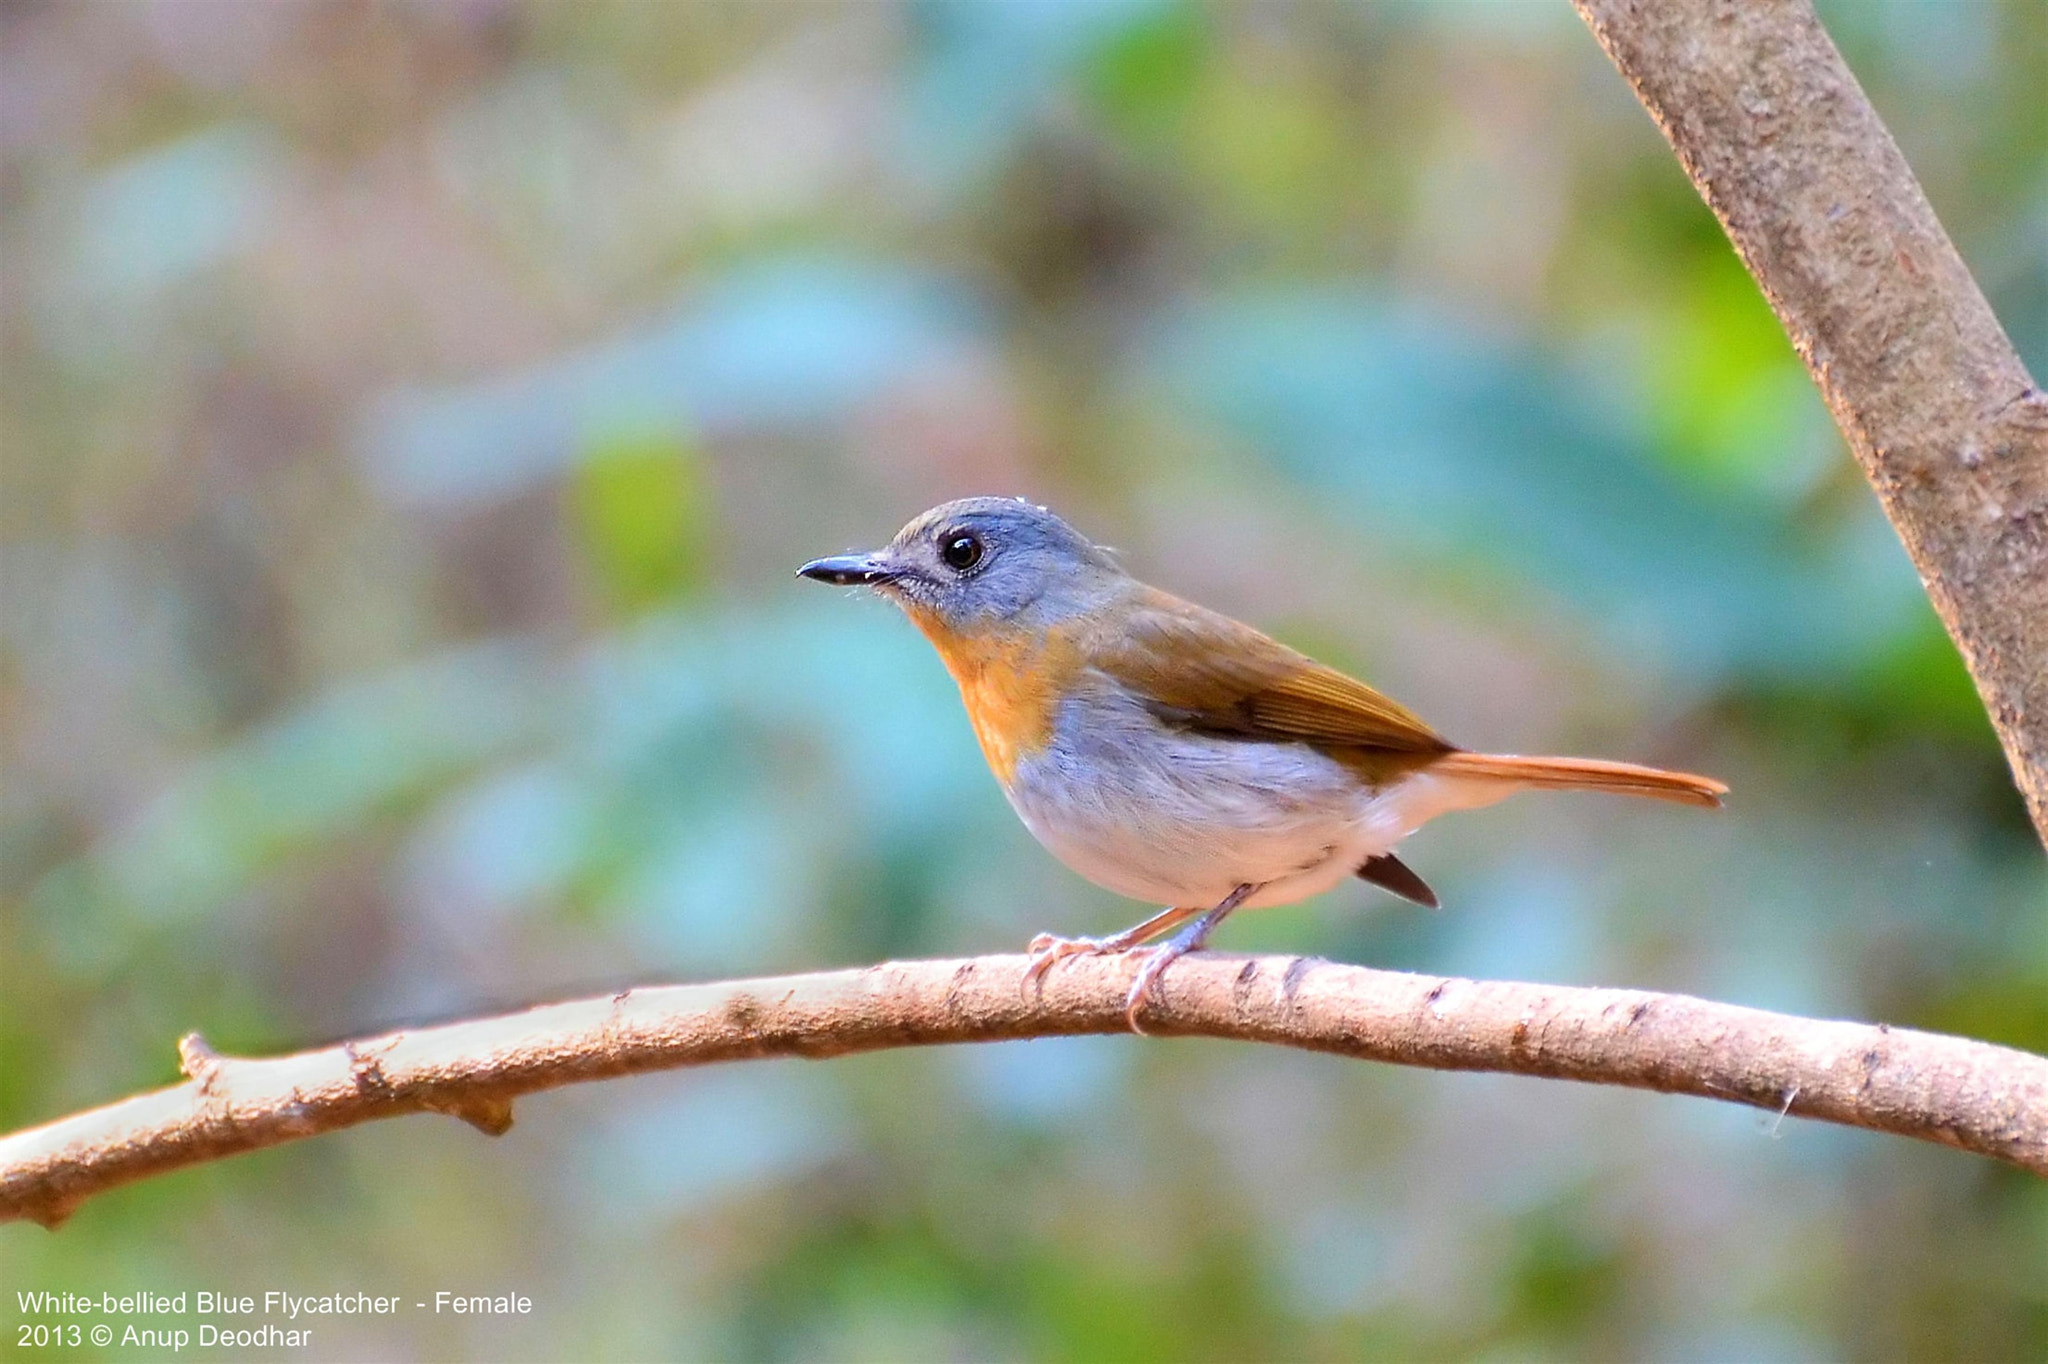 Photograph White-bellied Blue Flycatcher  - Female by Anup Deodhar on 500px